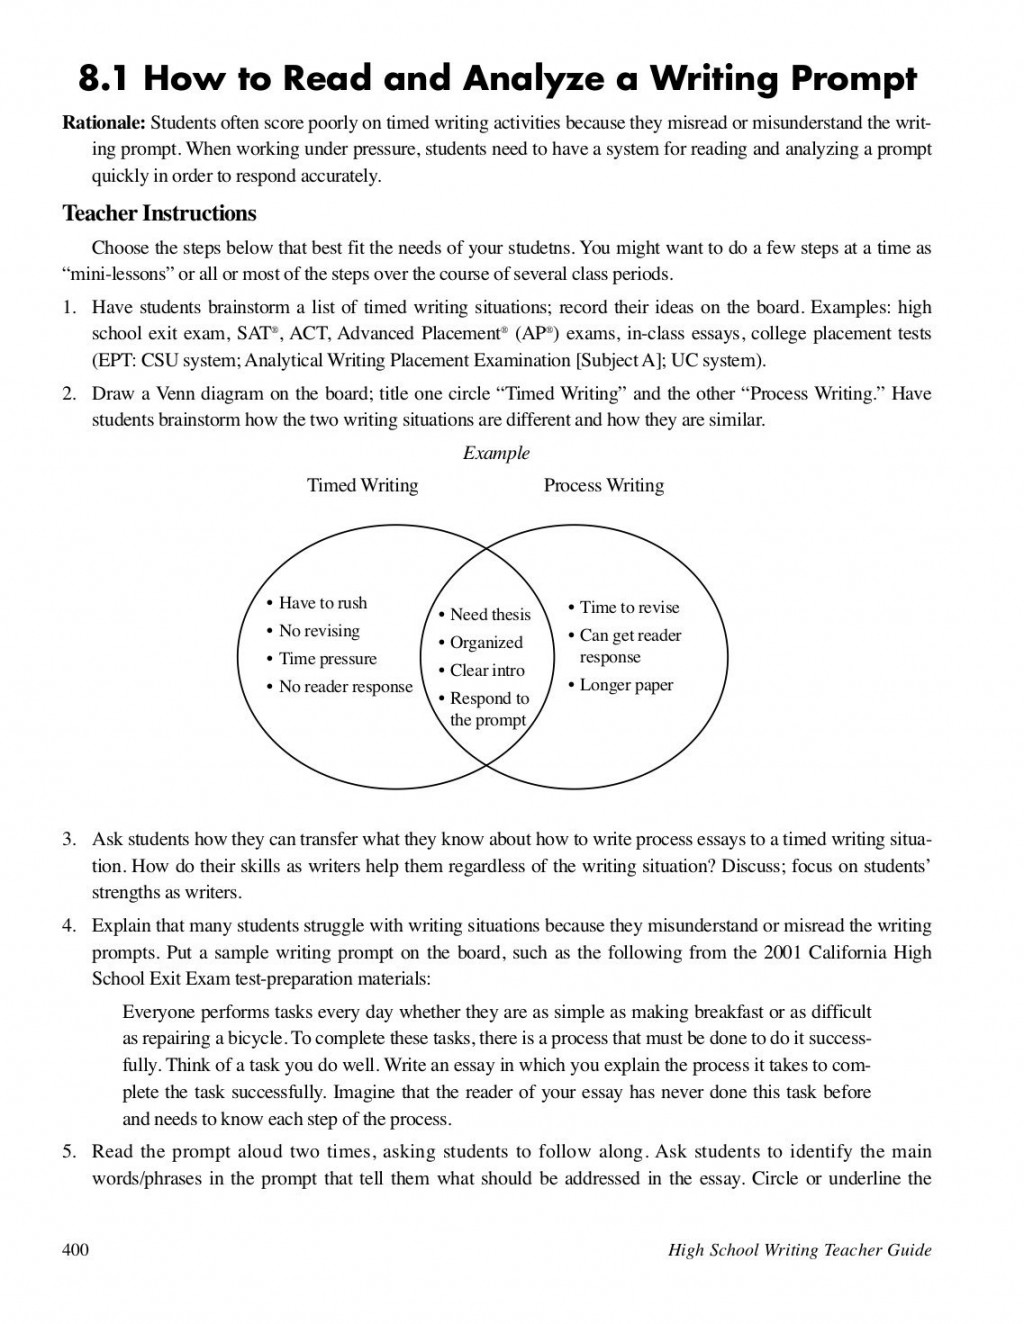 023 Prompts For Writing Essays Essay Example Model College Homework Academic Service How To Read And Analyze Prompt Best Persuasive Opinion 4th Grade Large